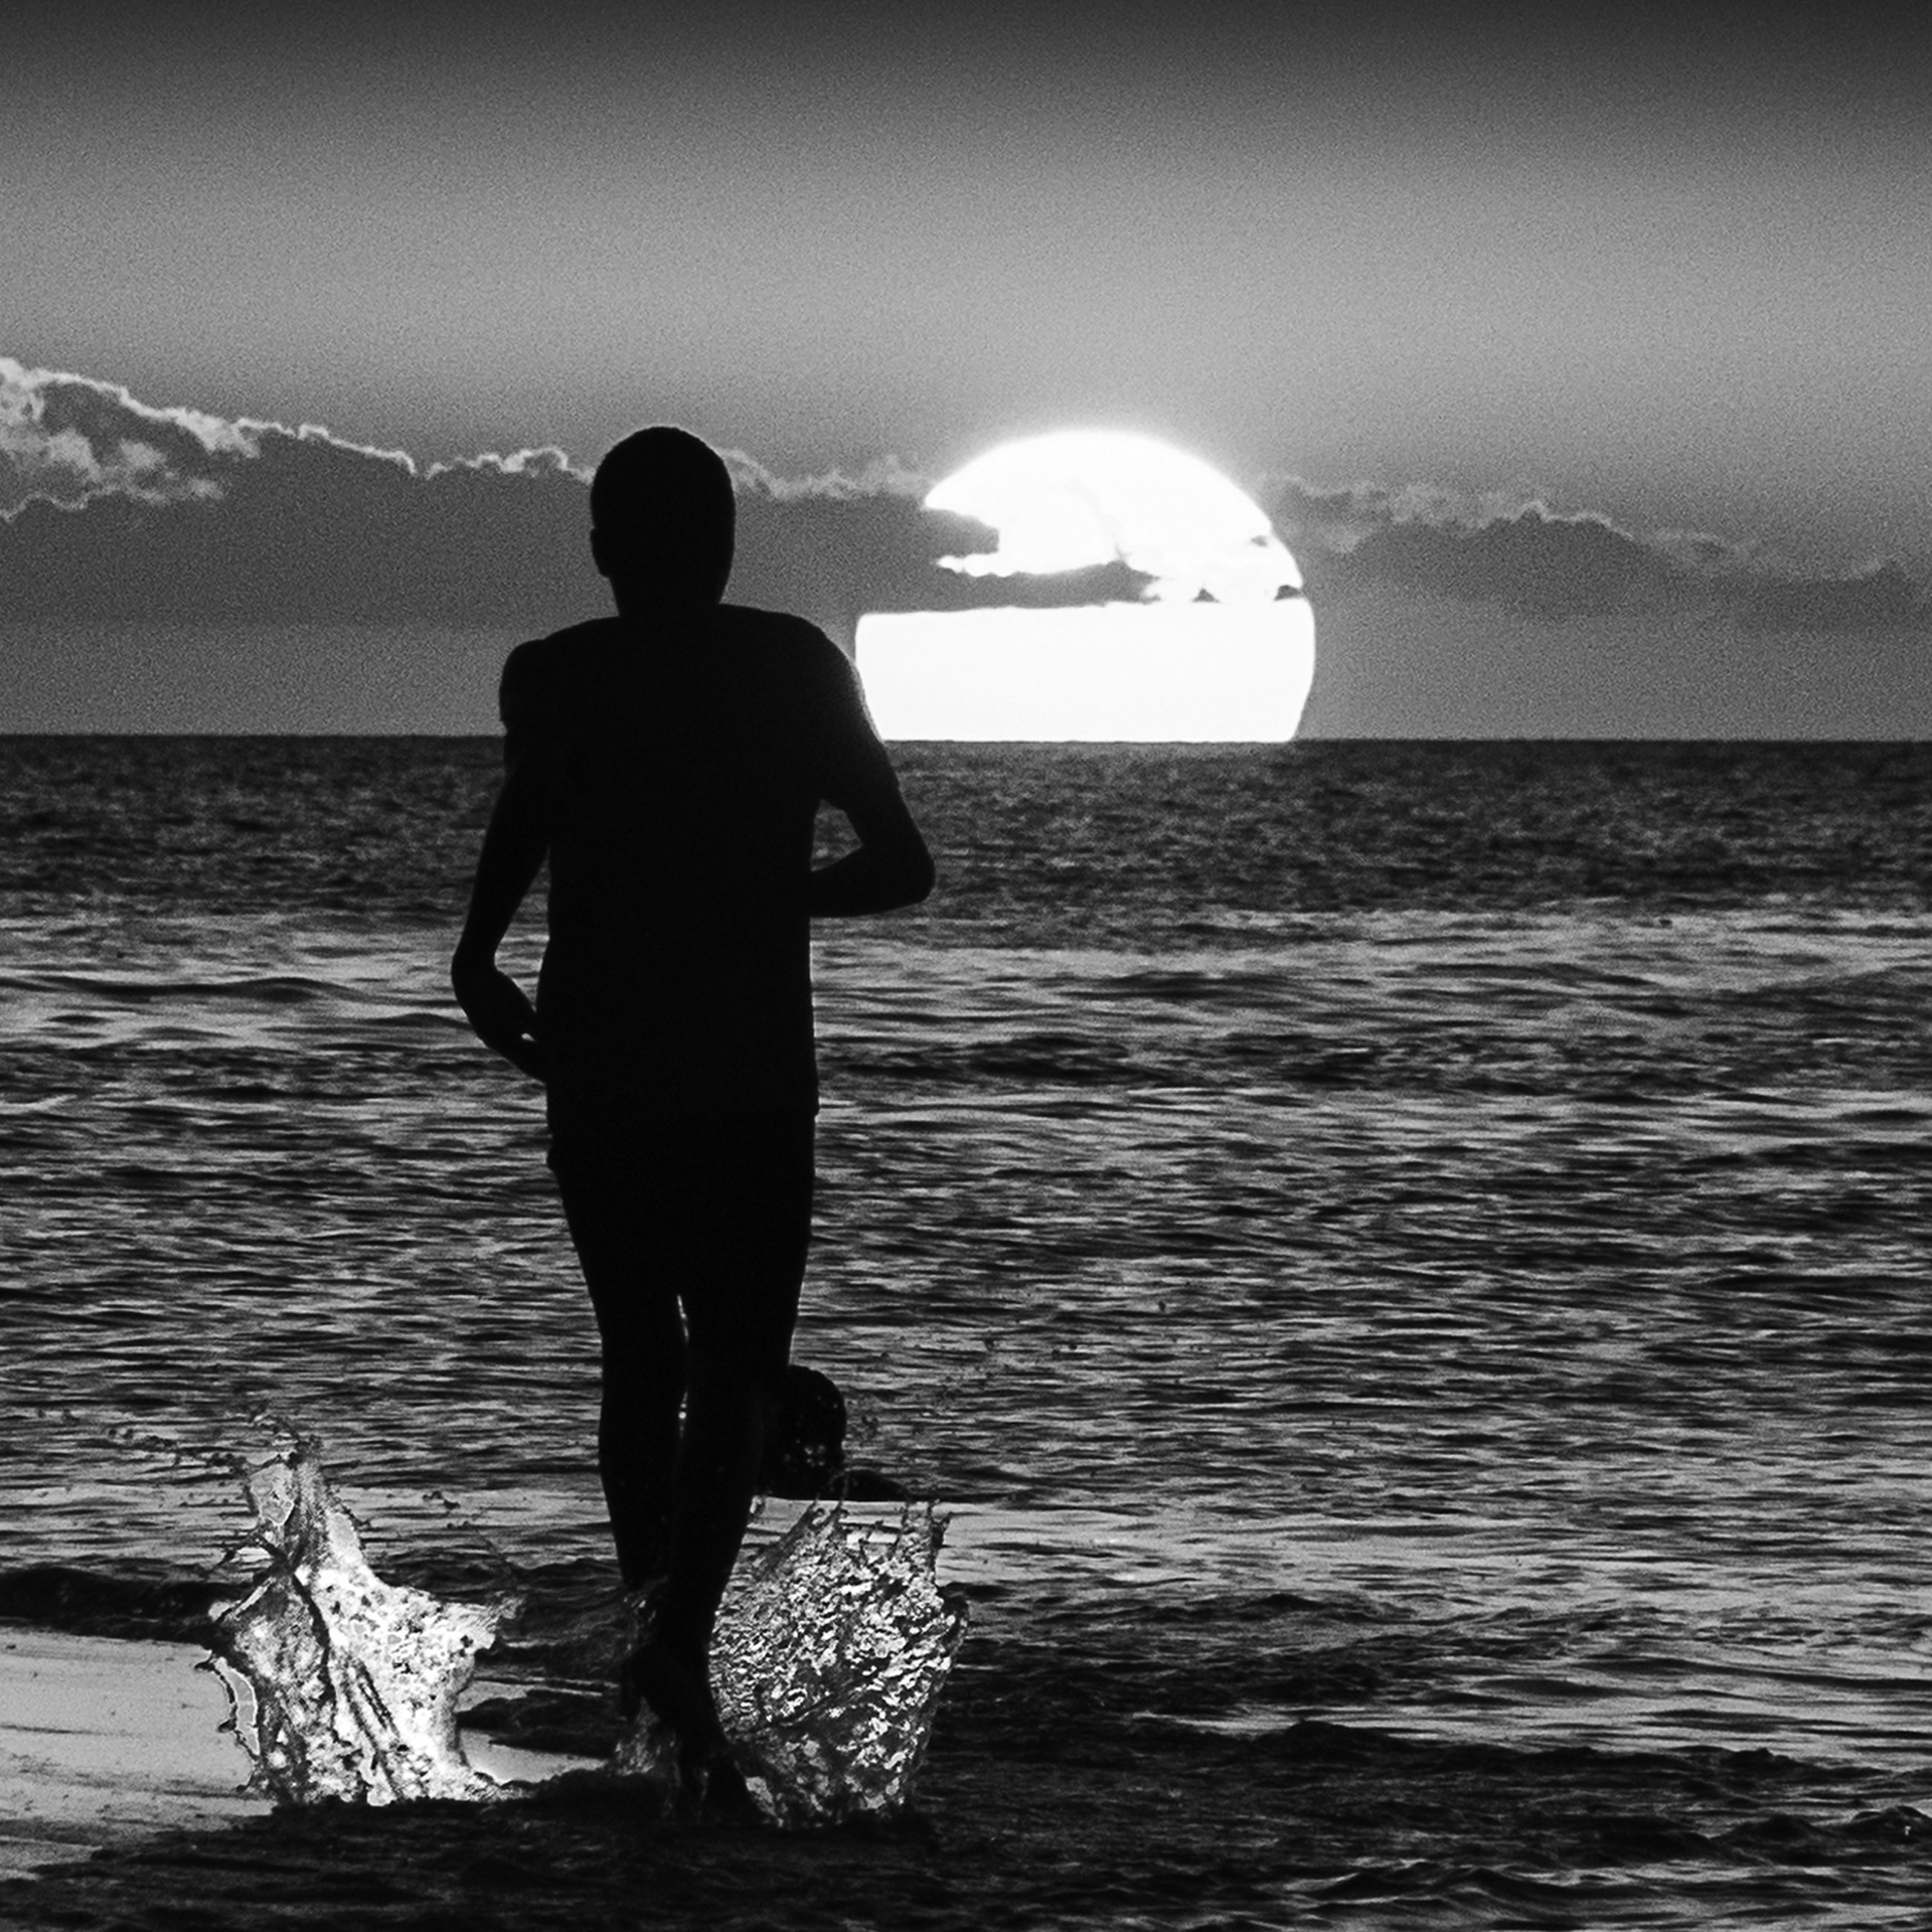 water, sea, real people, sky, standing, rear view, one person, beauty in nature, scenics - nature, lifestyles, nature, beach, full length, leisure activity, land, rock, men, rock - object, outdoors, horizon over water, looking at view